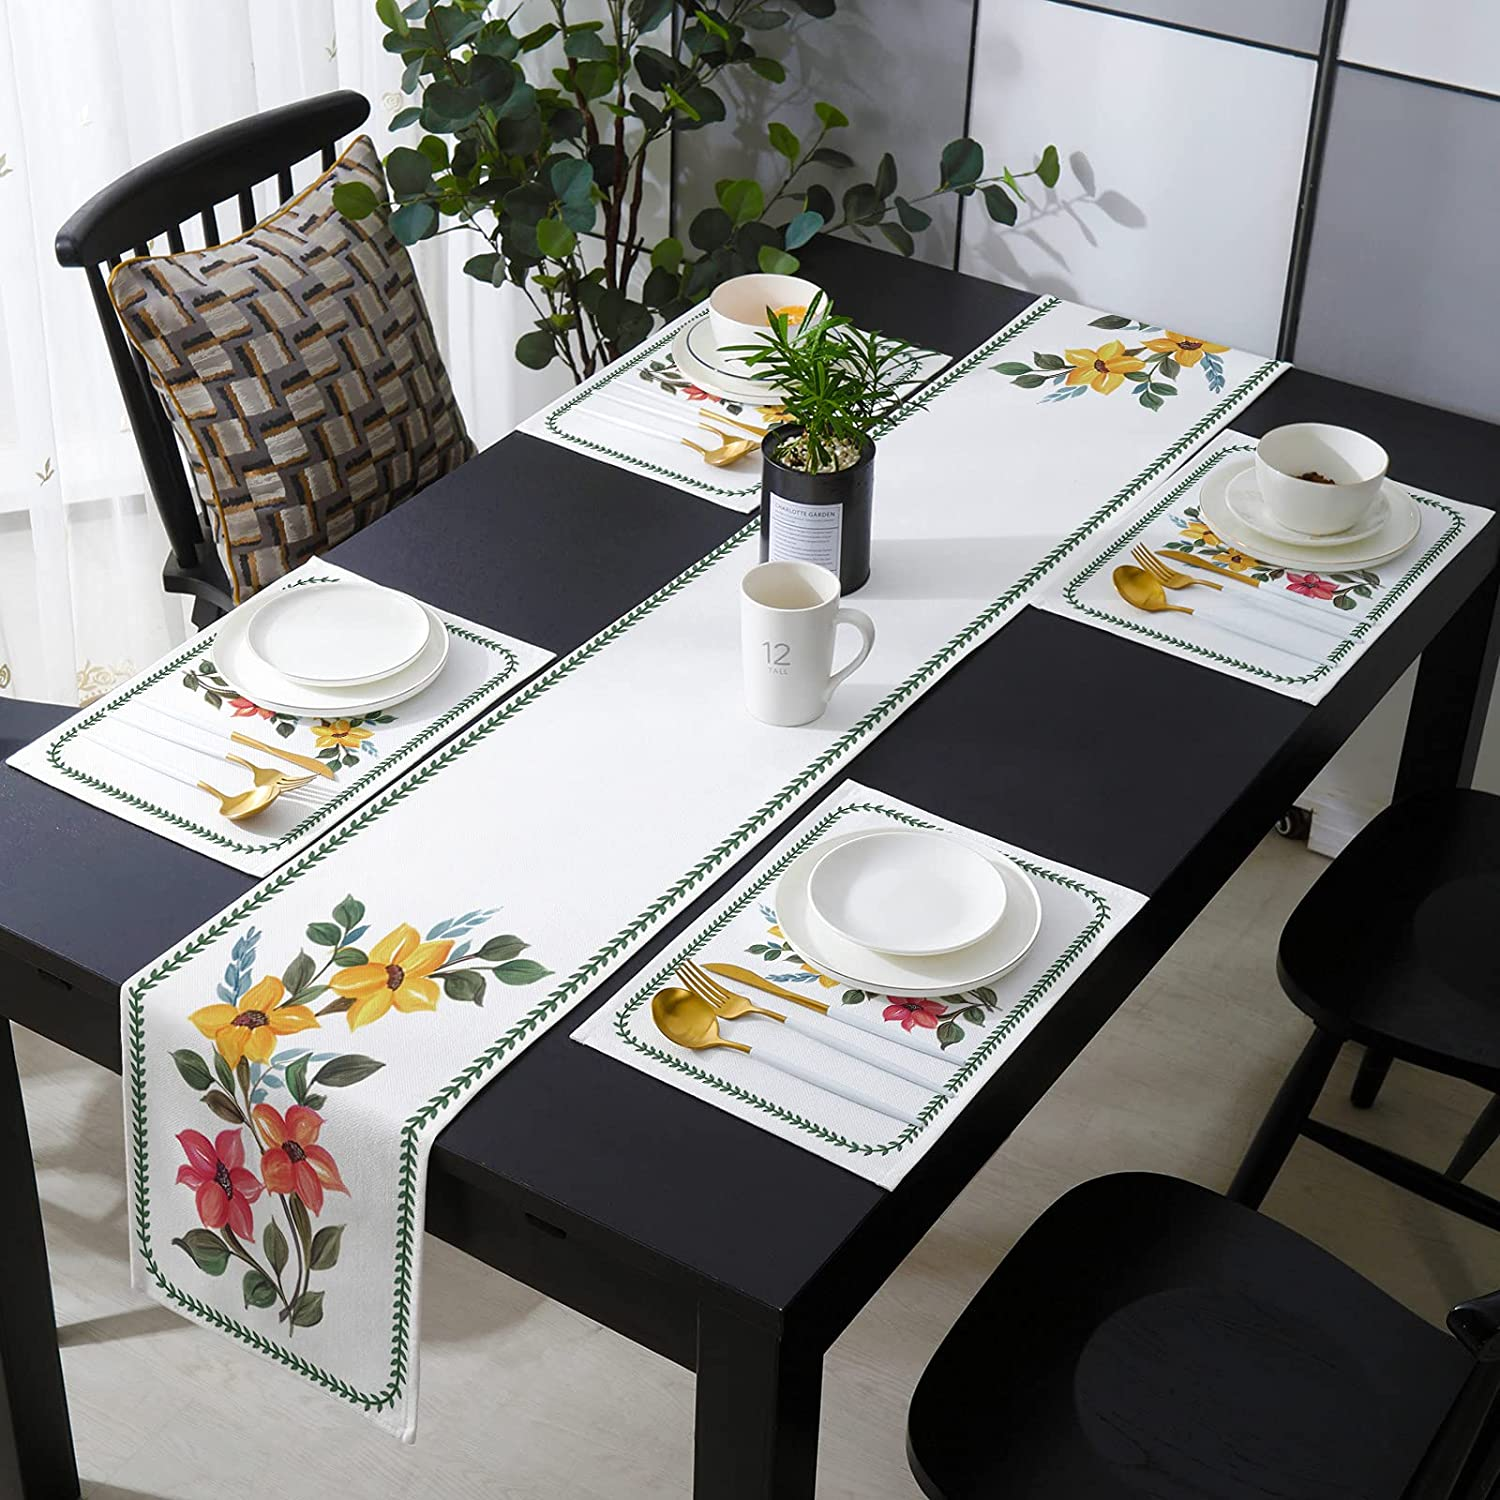 Table Runner Popular product Sets with Ranking TOP7 Placemats - Mats Matching 6 Sa